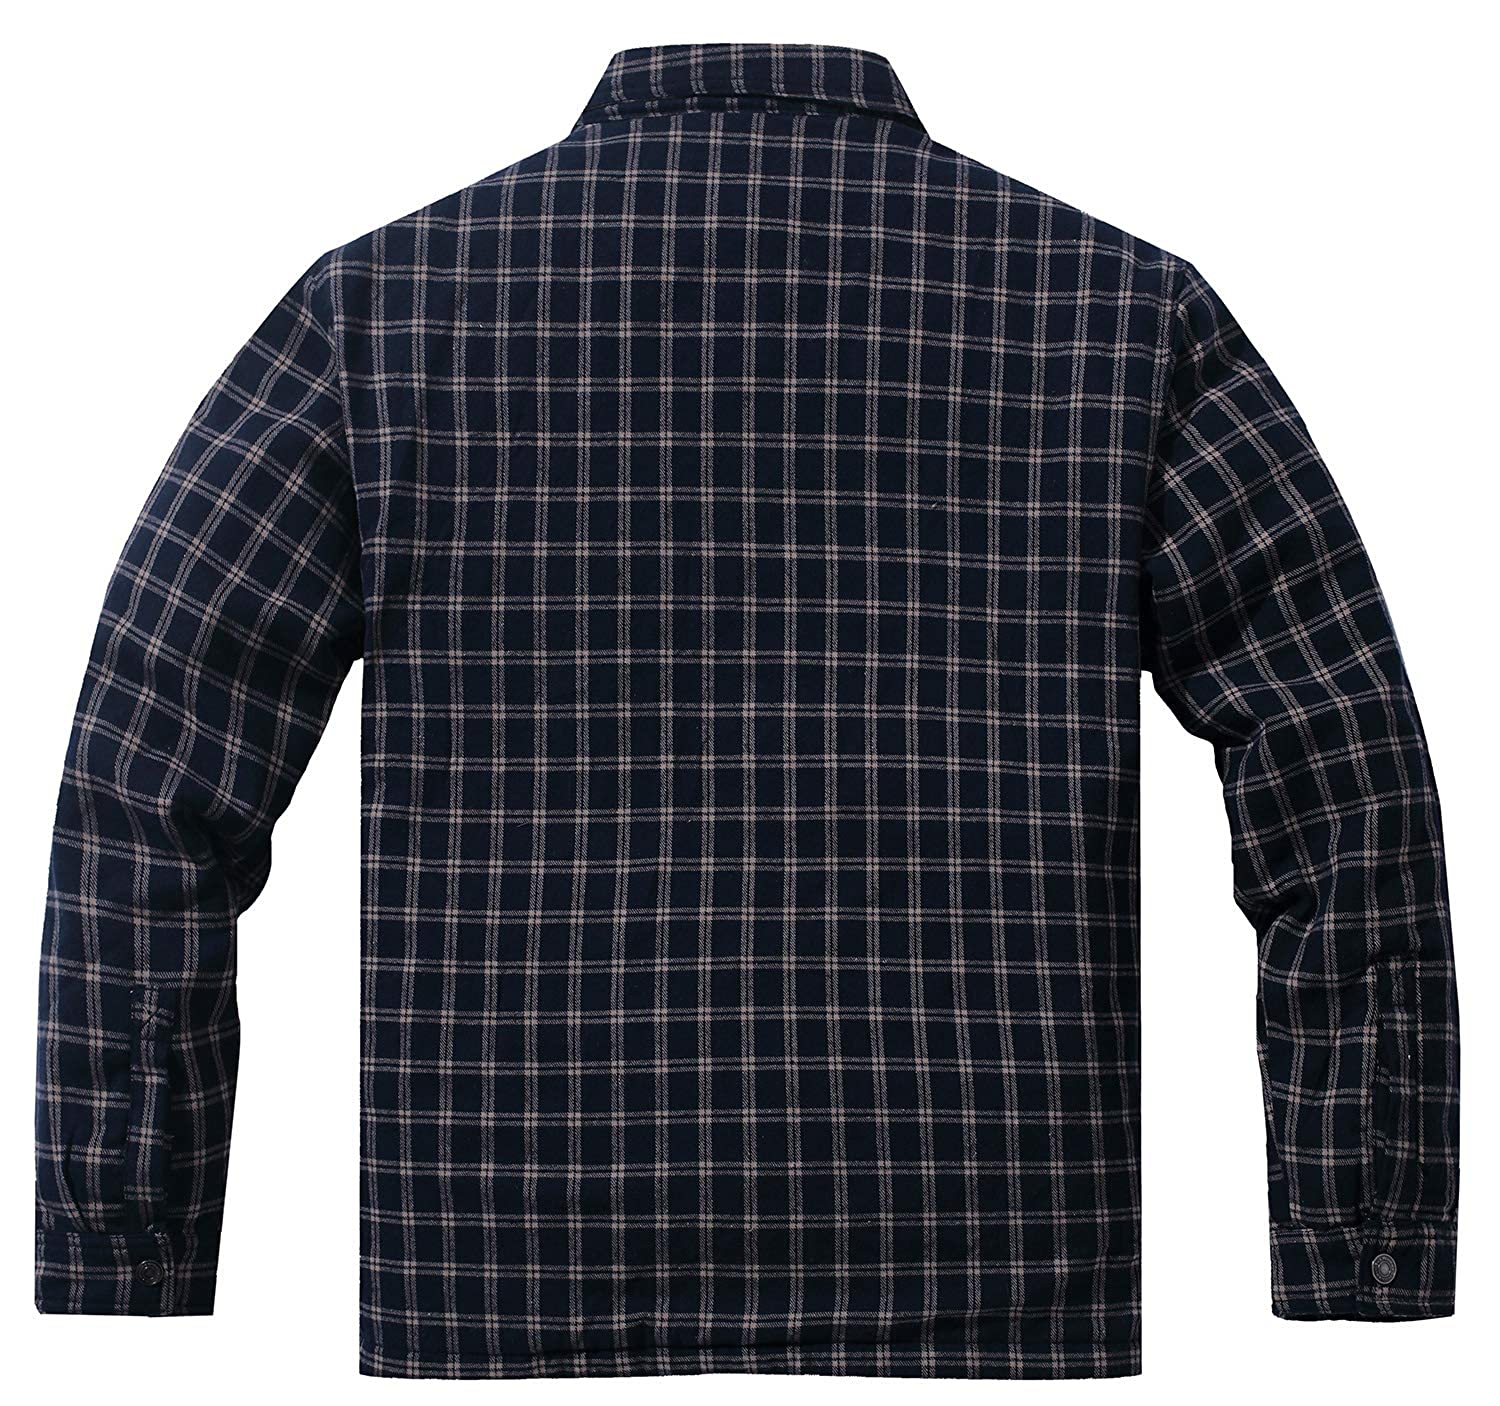 aa9fd4e41e1 WenVen Men s Plaid Flannel Thermal Lined Button Down Shirt Jacket at Amazon  Men s Clothing store